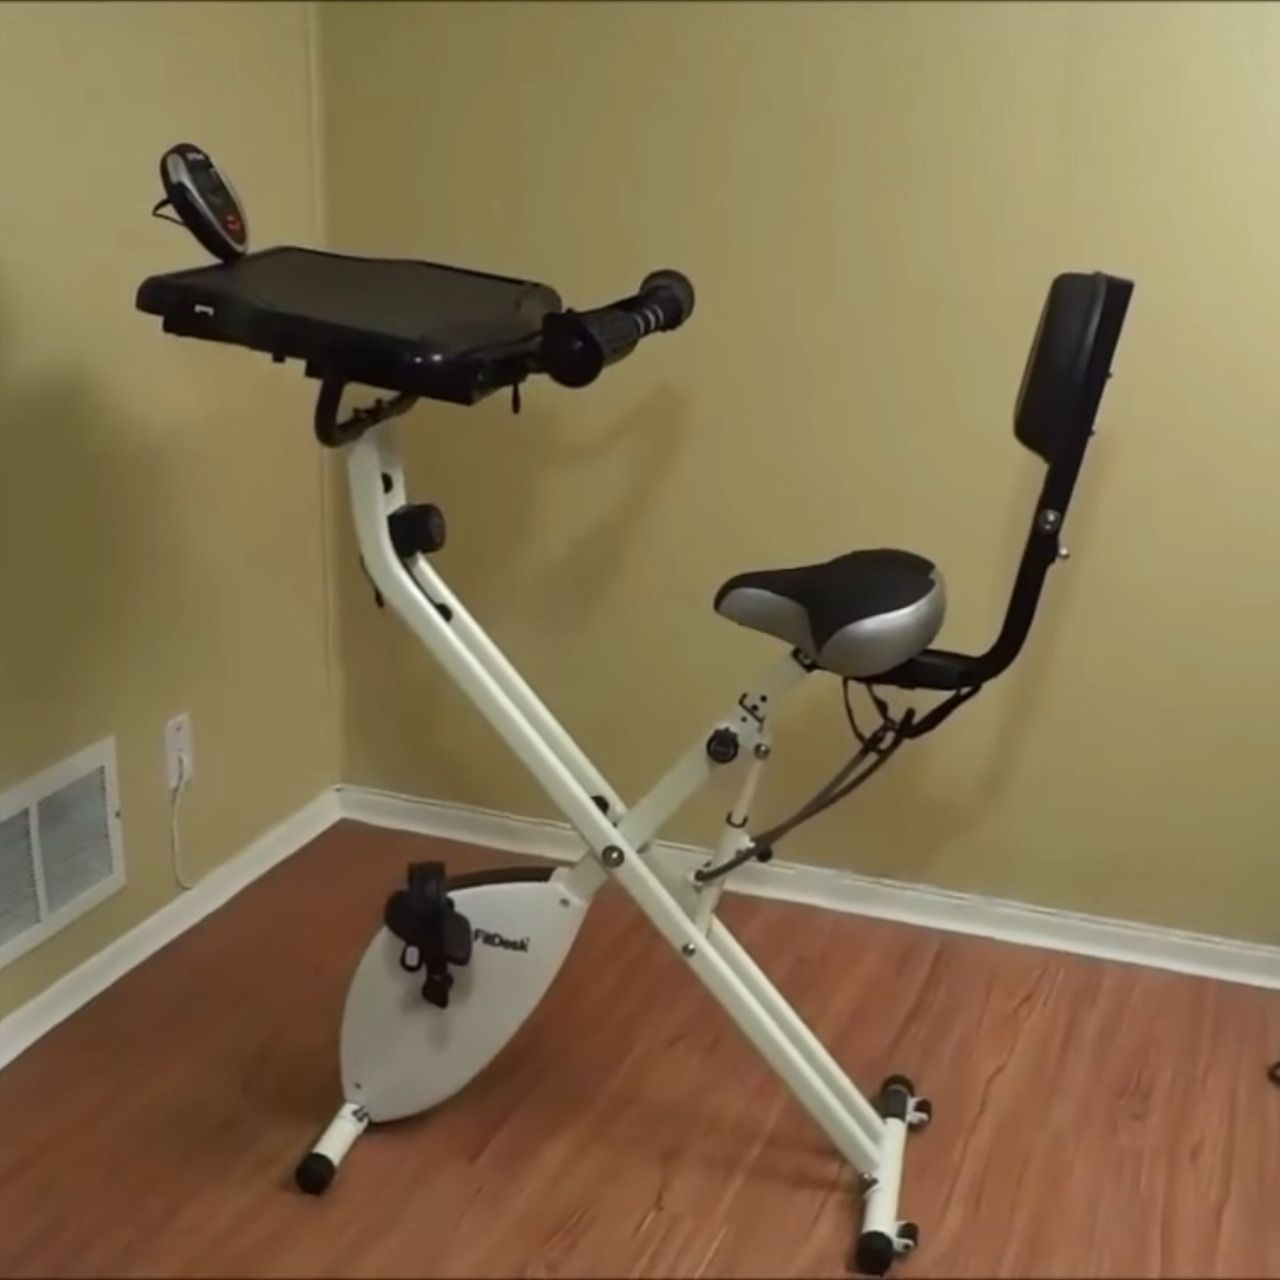 Craigslist Dallas Electronics Biking Workout Exercise Bikes Bike Stand